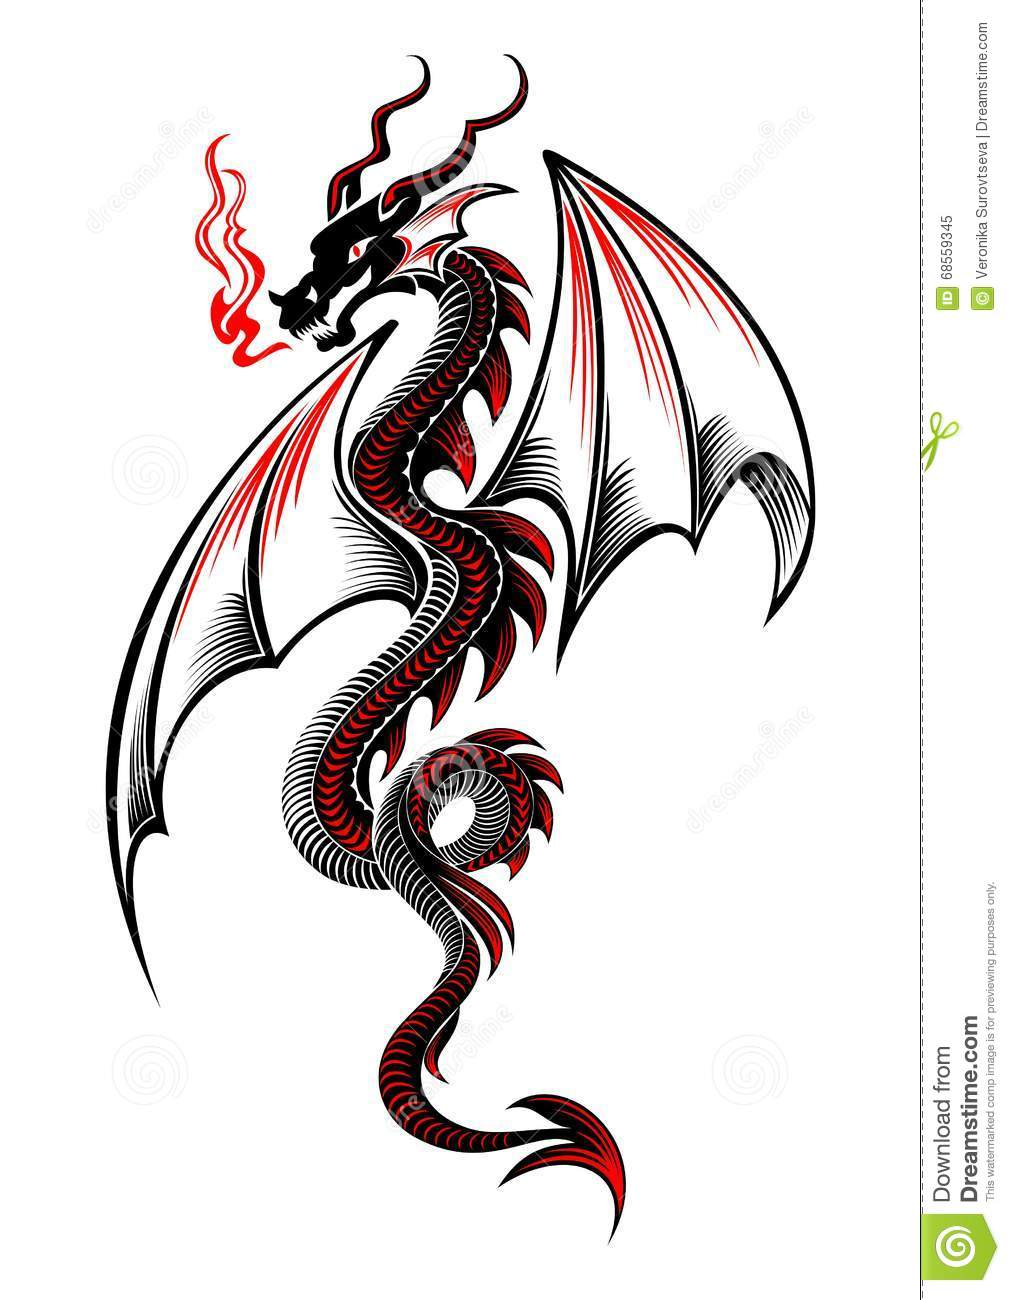 black and red tribal dragon tattoo stock illustration image 68559345. Black Bedroom Furniture Sets. Home Design Ideas